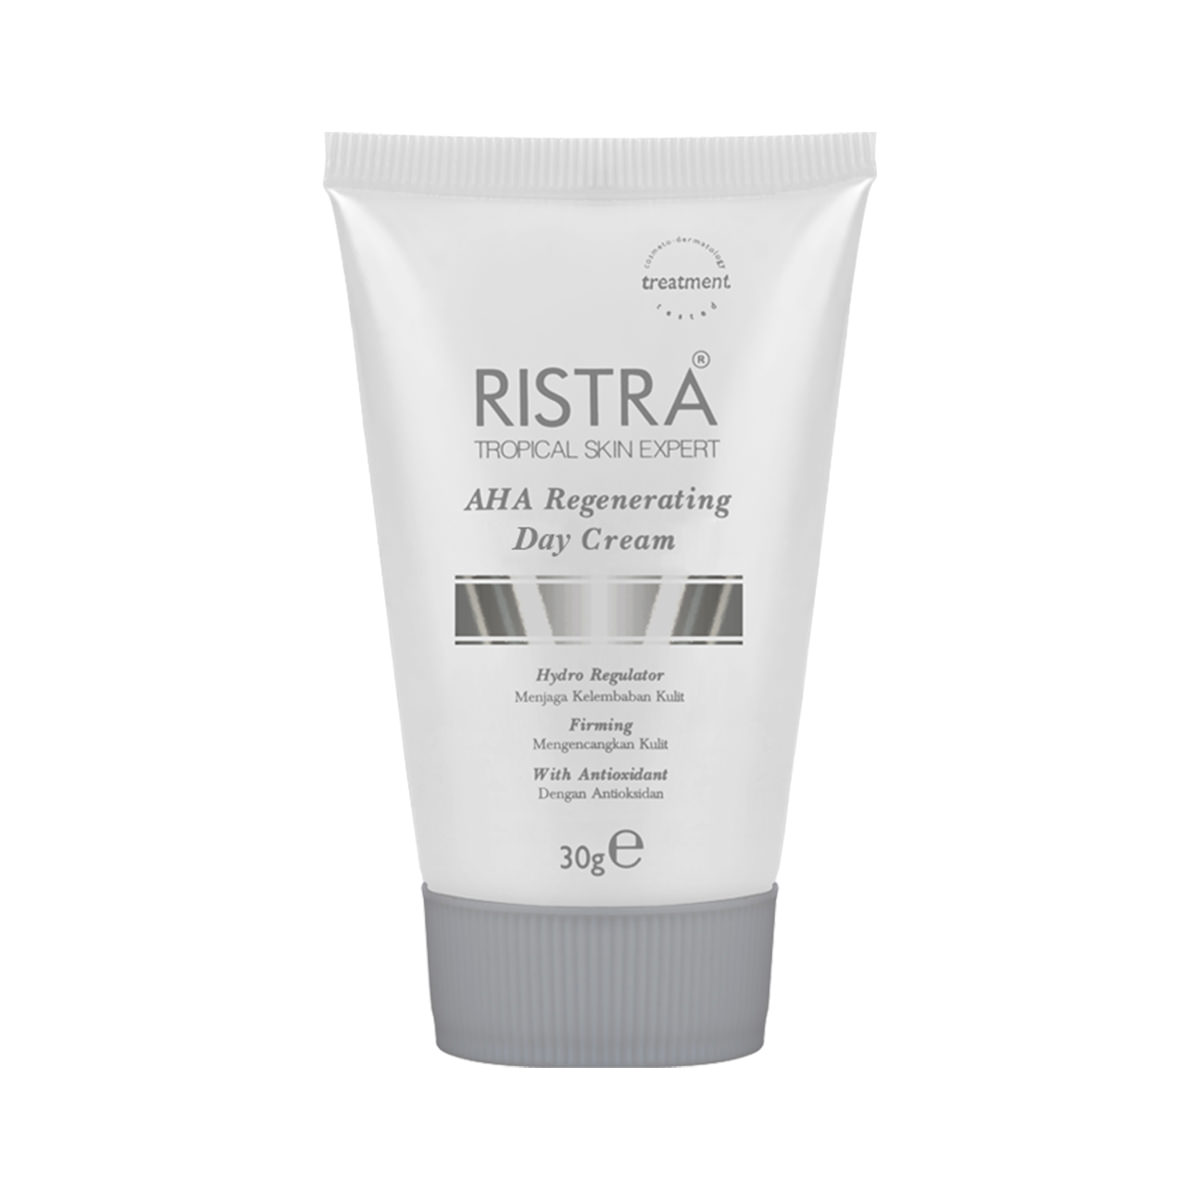 RISTRA-AHA-Regenerating-Day-Cream-30gr_sfw (1)